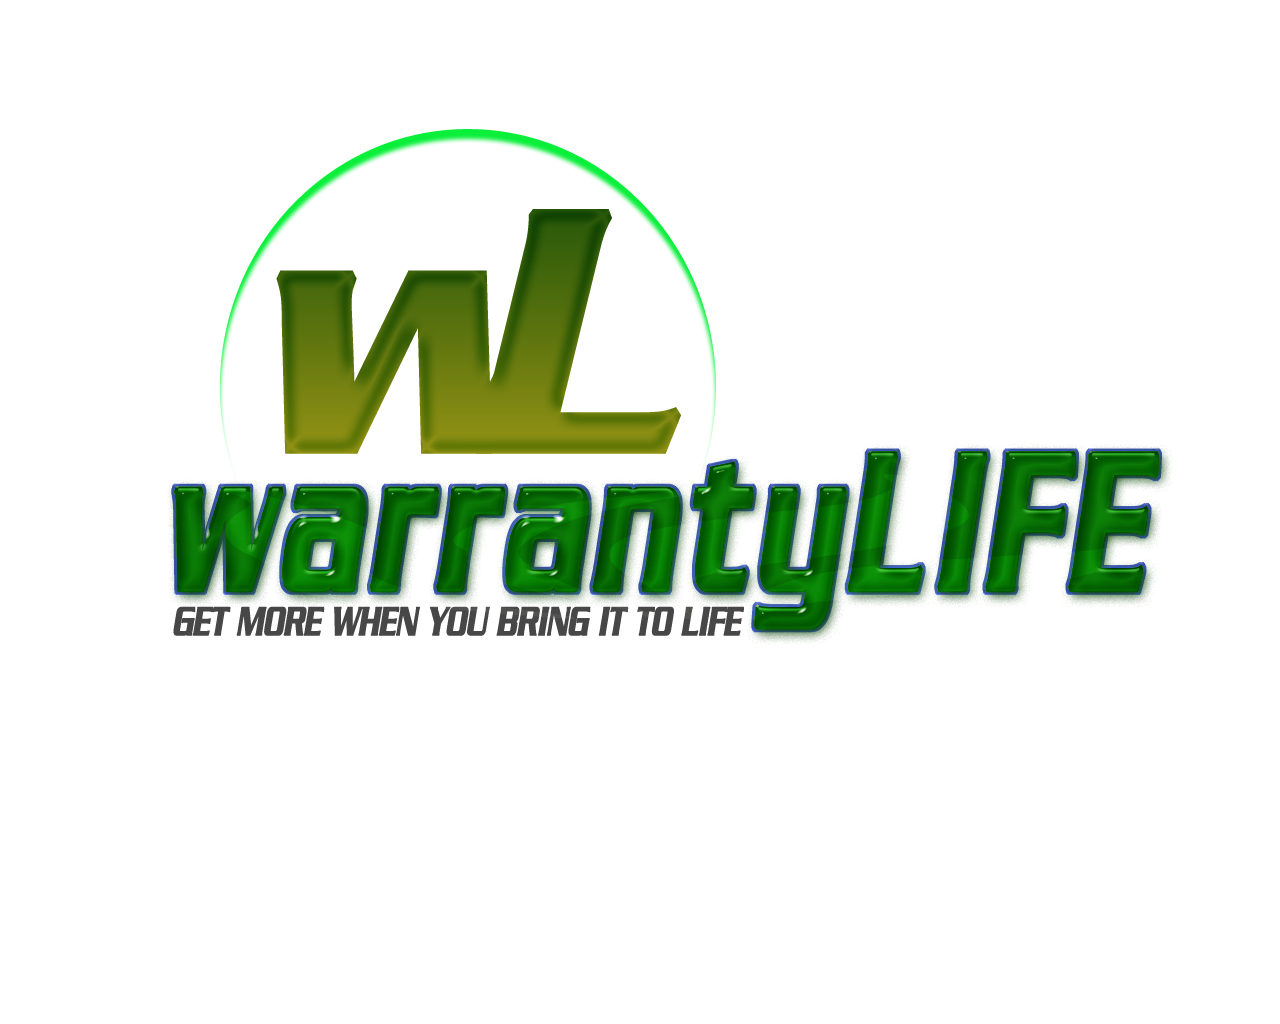 Logo Design by bolshoi_booze - Entry No. 17 in the Logo Design Contest WarrantyLife Logo Design.